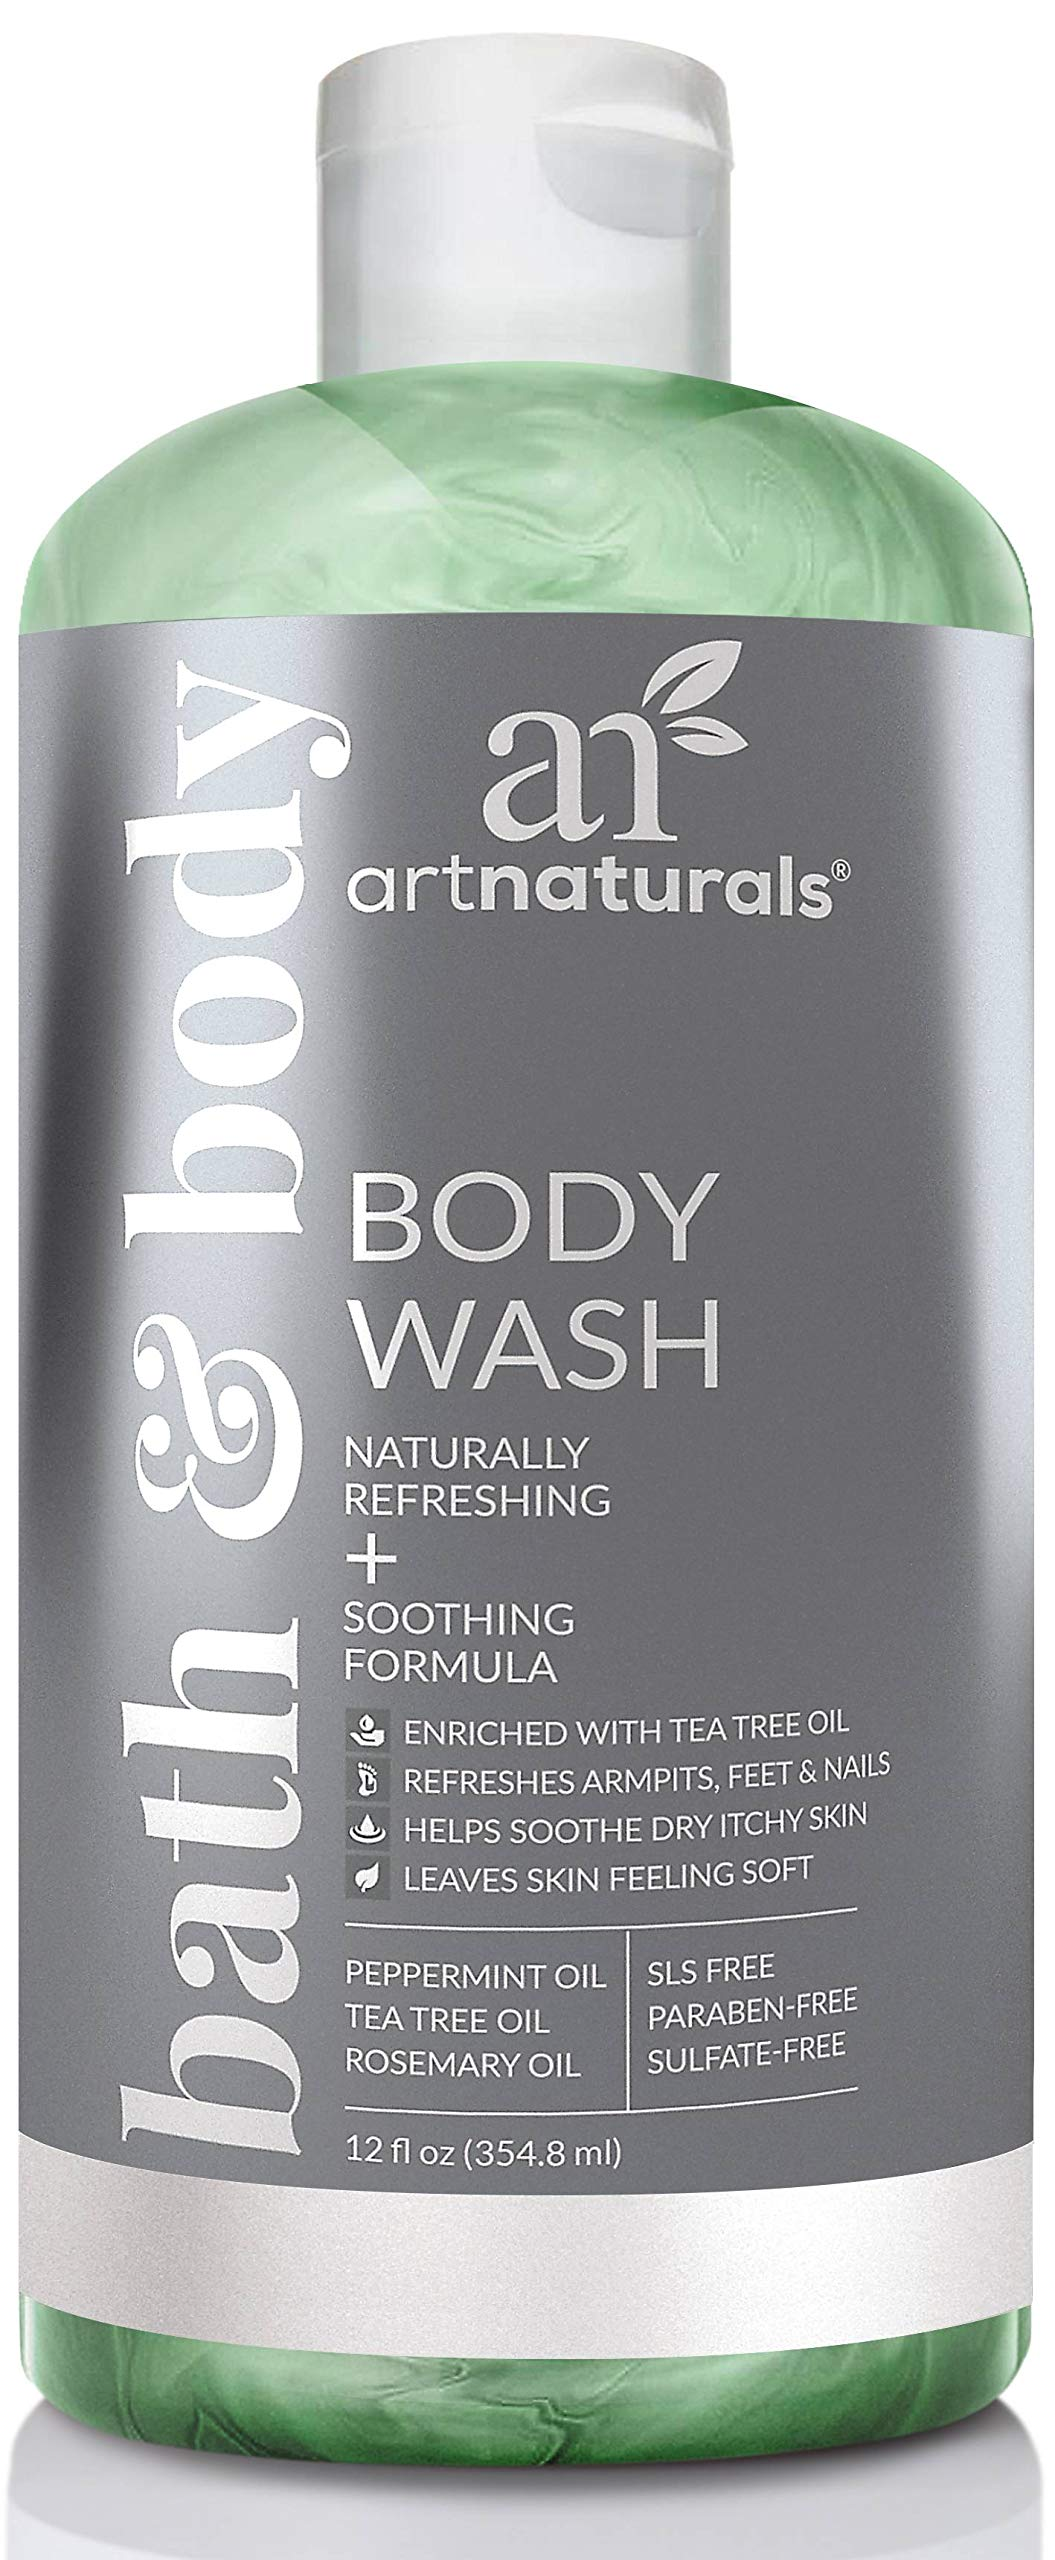 ArtNaturals Tea Tree Body and Foot Wash - (12 Fl Oz / 355ml) - Peppermint and Eucalyptus Oil - Natural Anti-Bacterial Soap - Eczema Anti-Fungal Feet, Dry Skin, Jock Itch, Acne Athletes Foot Treatment by ArtNaturals